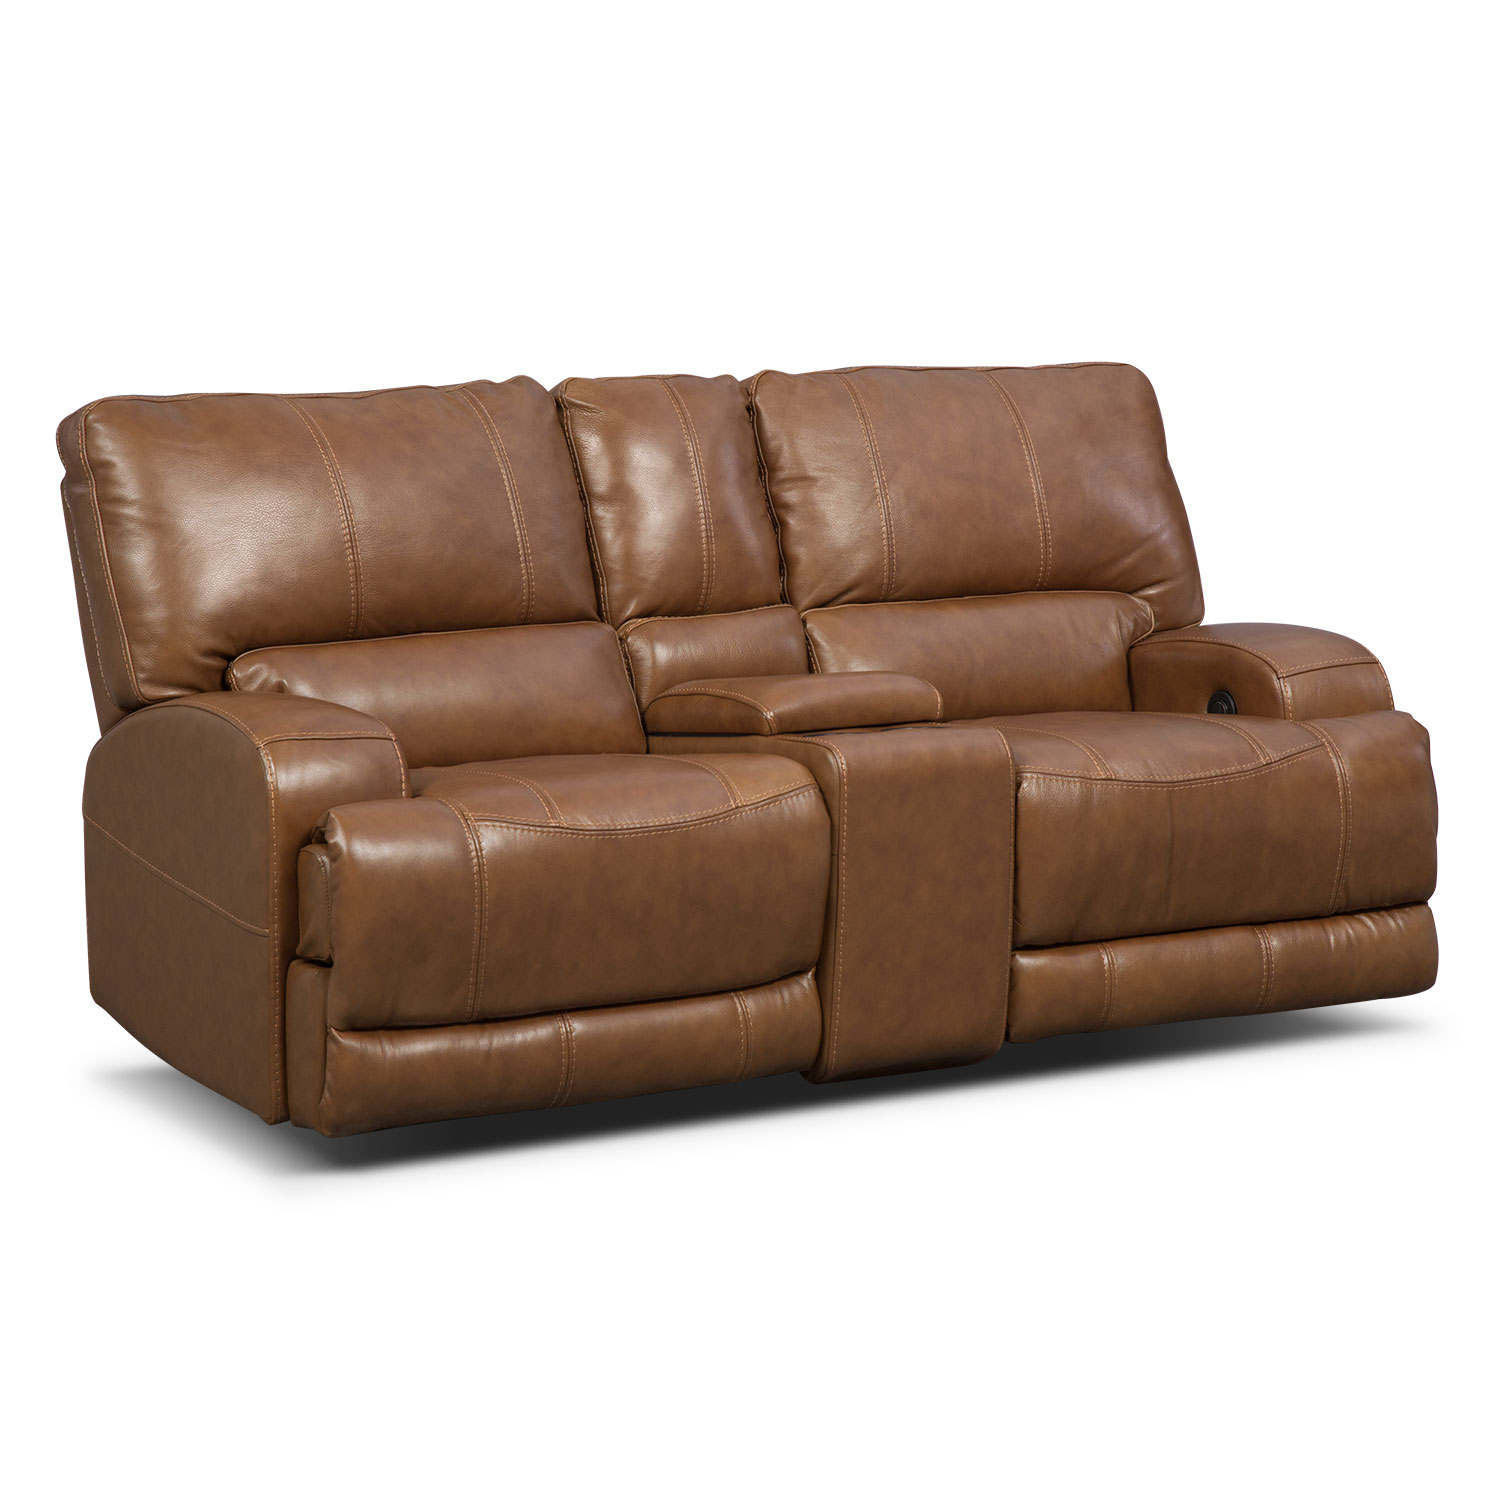 Barton Power Reclining Loveseat with Console  - Camel